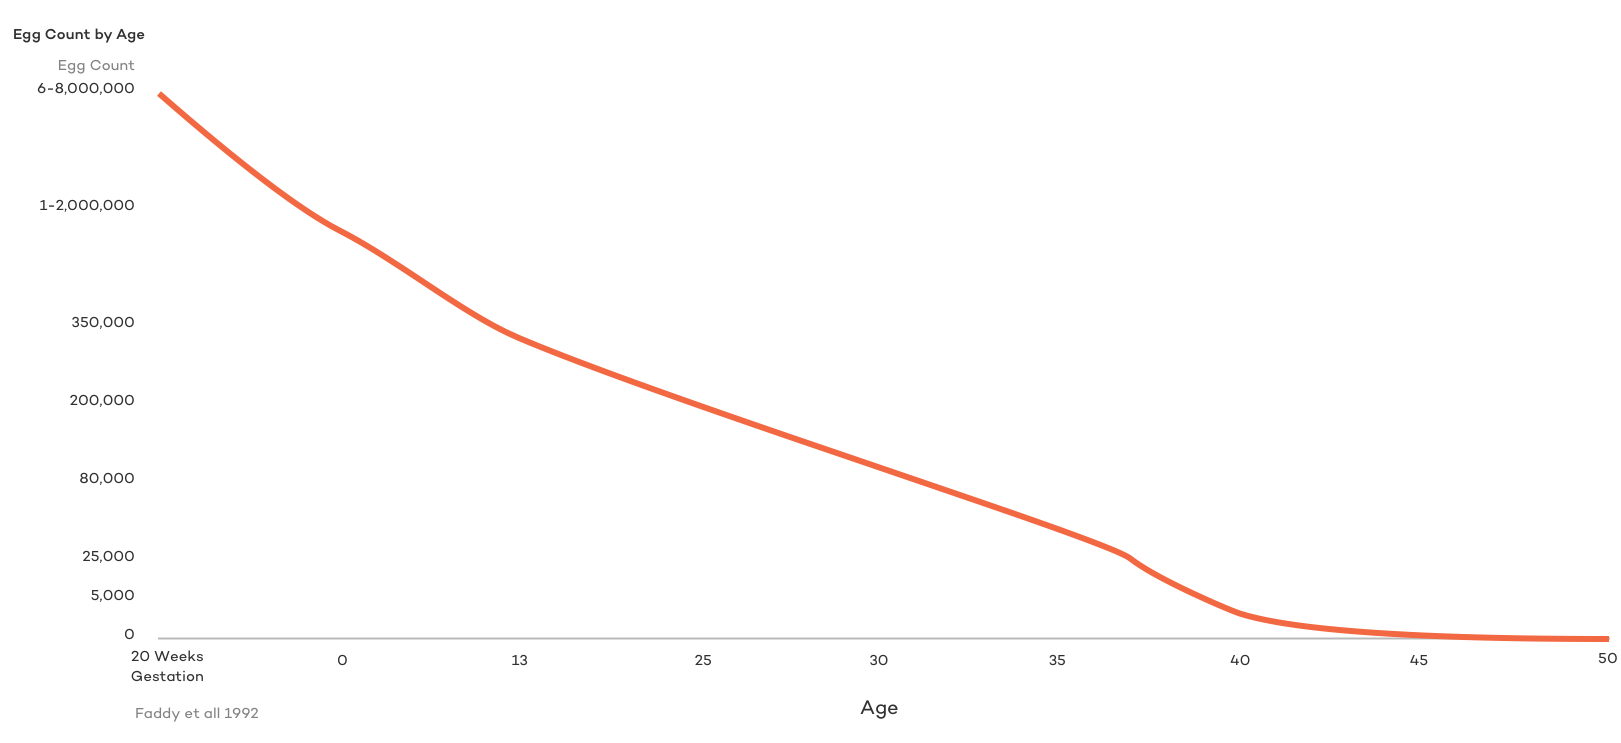 Egg Count and Ovarian Reserve by Age